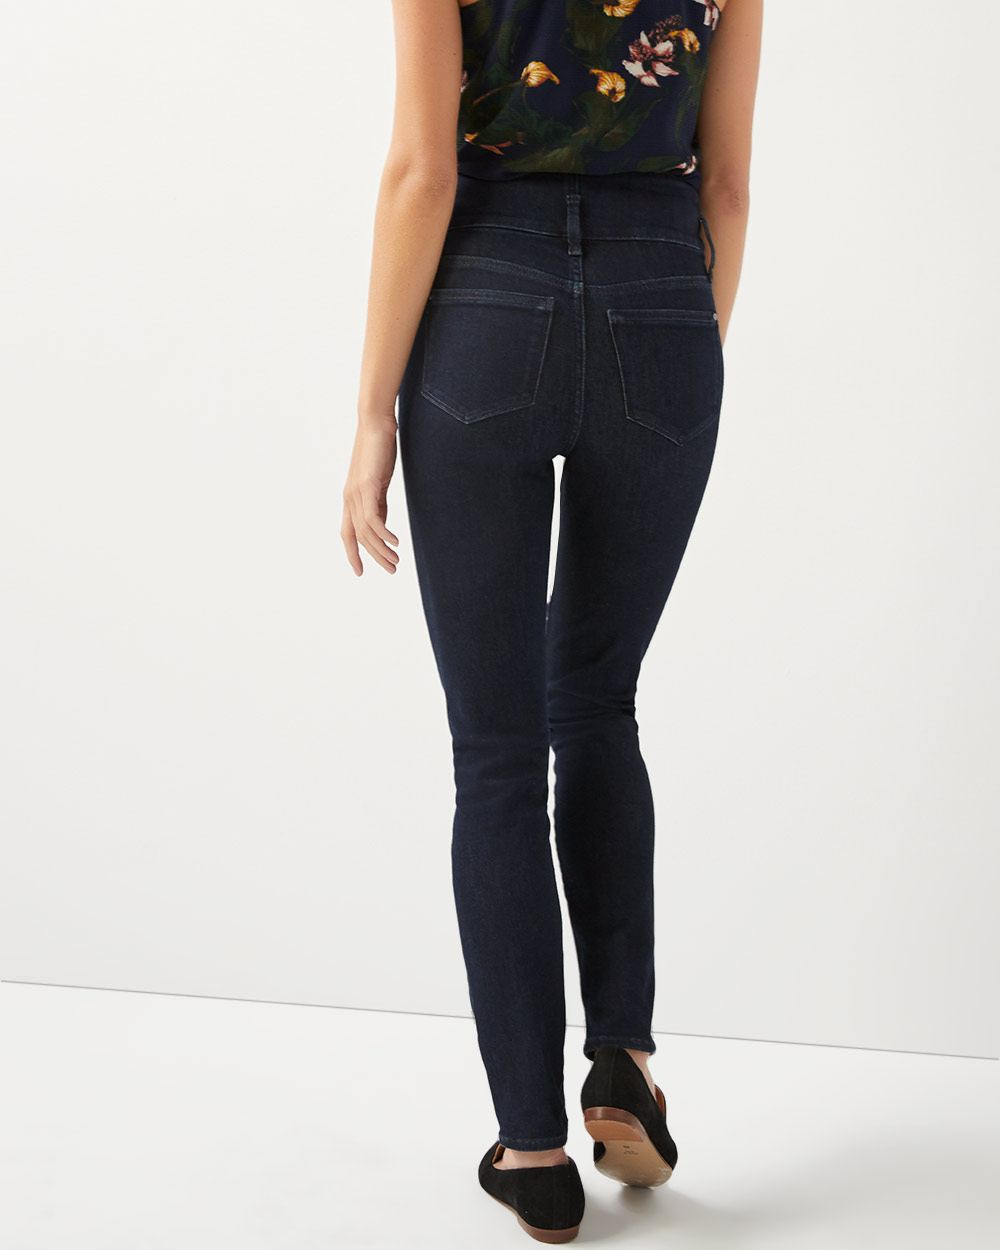 Ultra High-rise extreme 360 dark wash skinny jeans